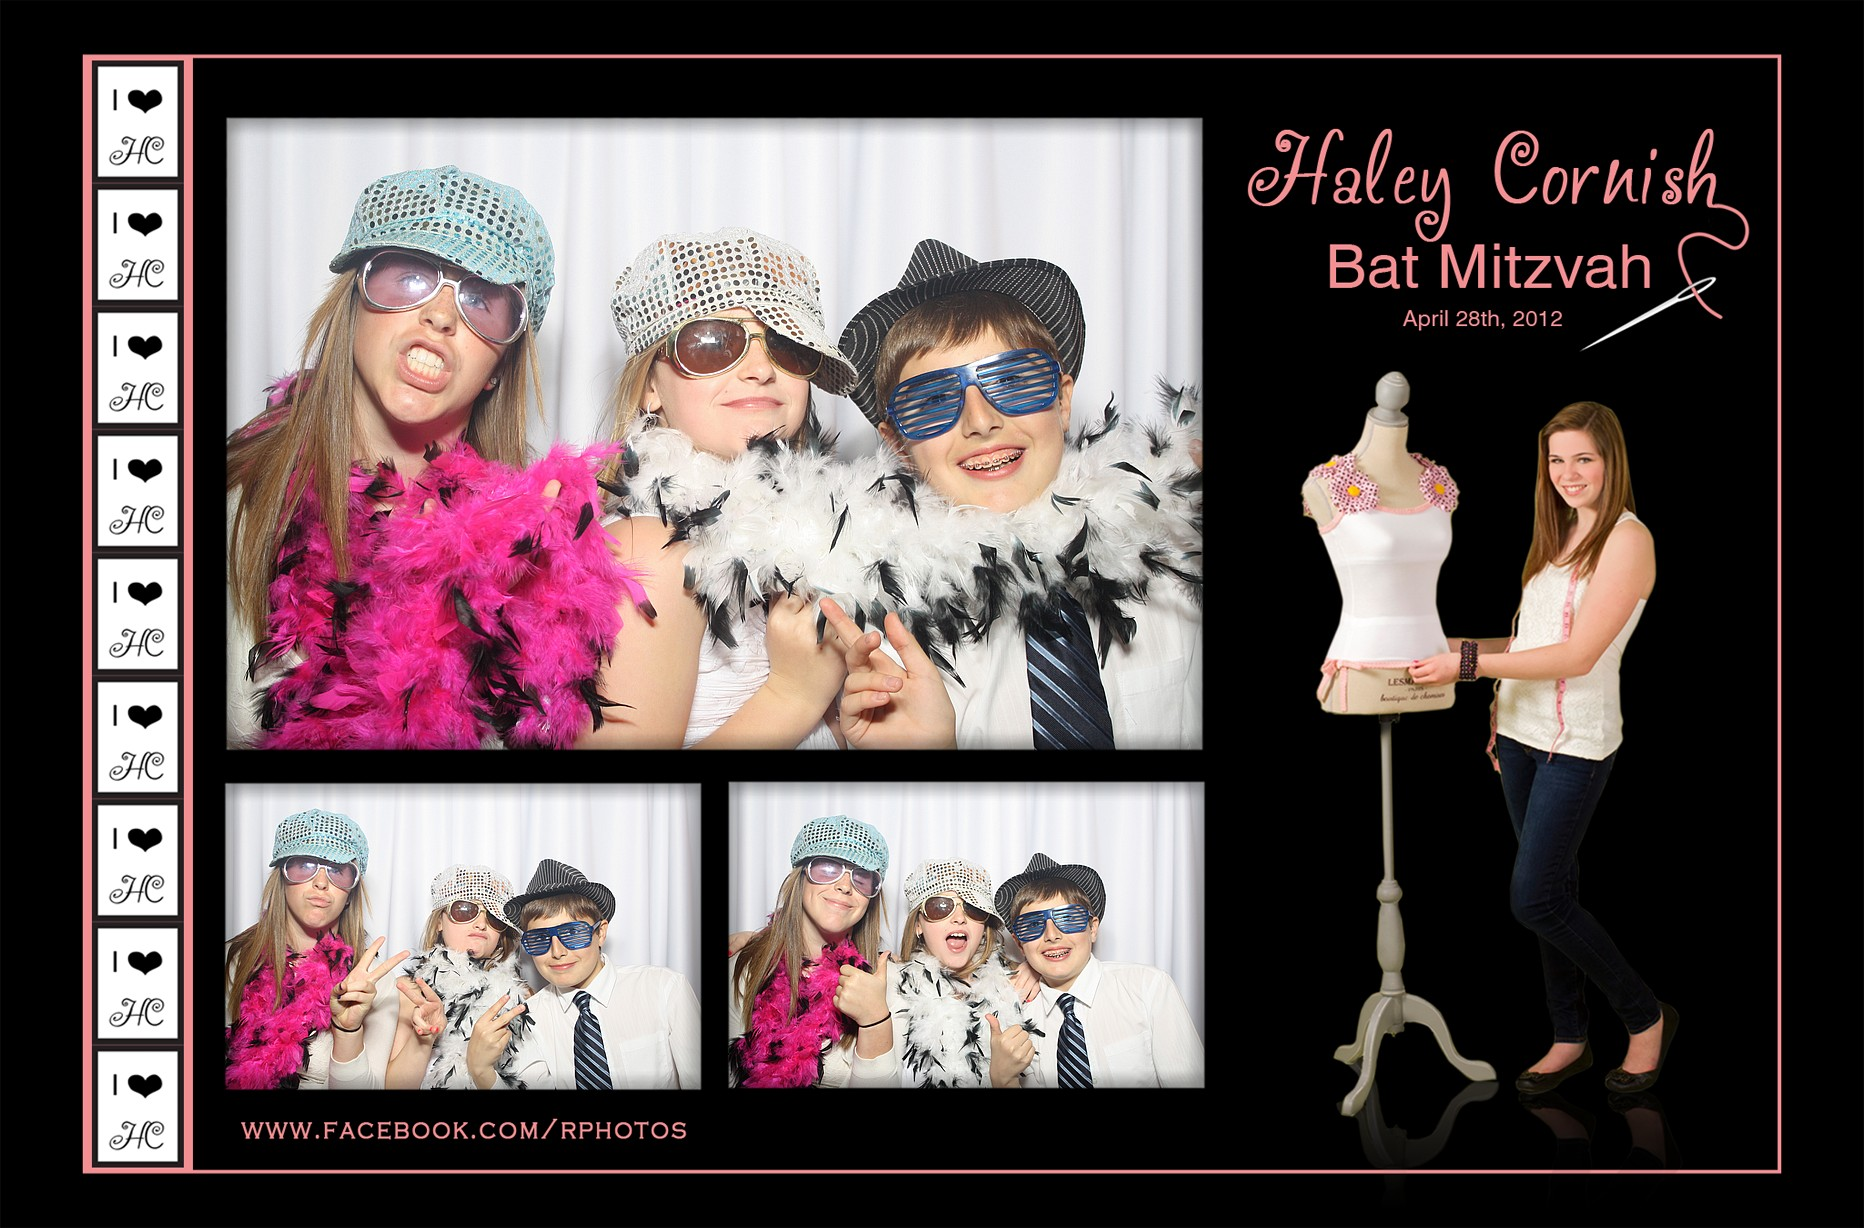 photo-booth-mitzvah-11.jpg